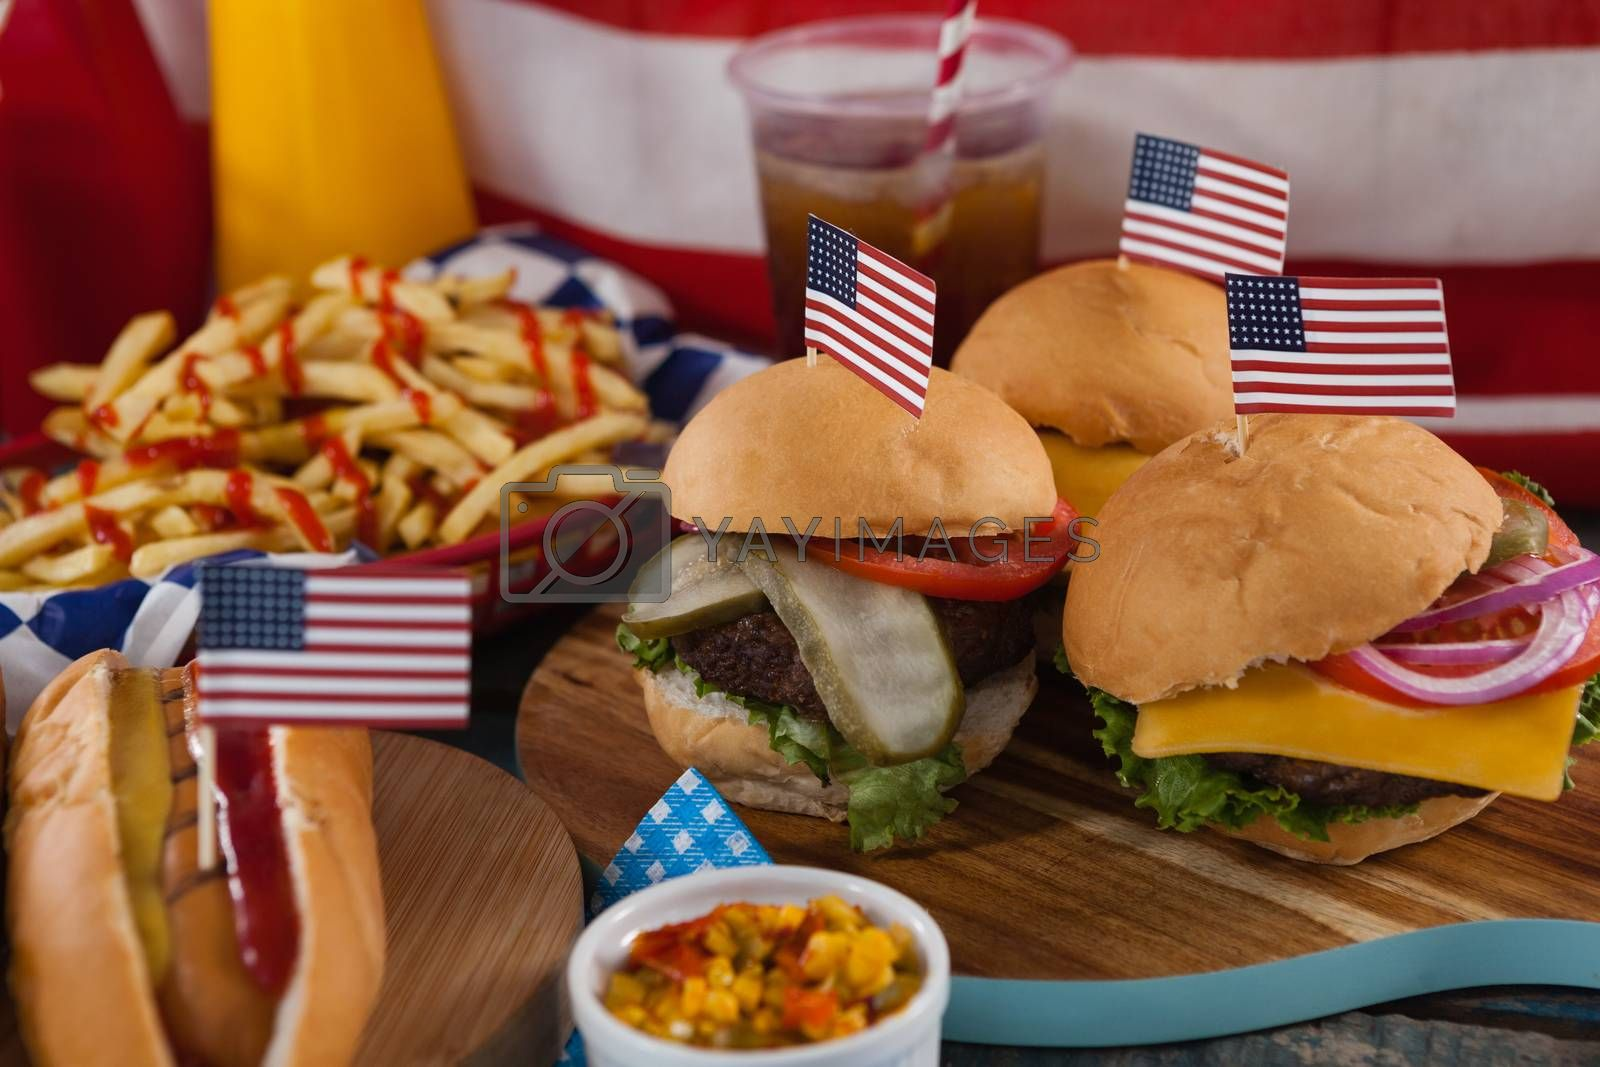 Hot dog and hamburgers decorated with 4th july theme on wooden board